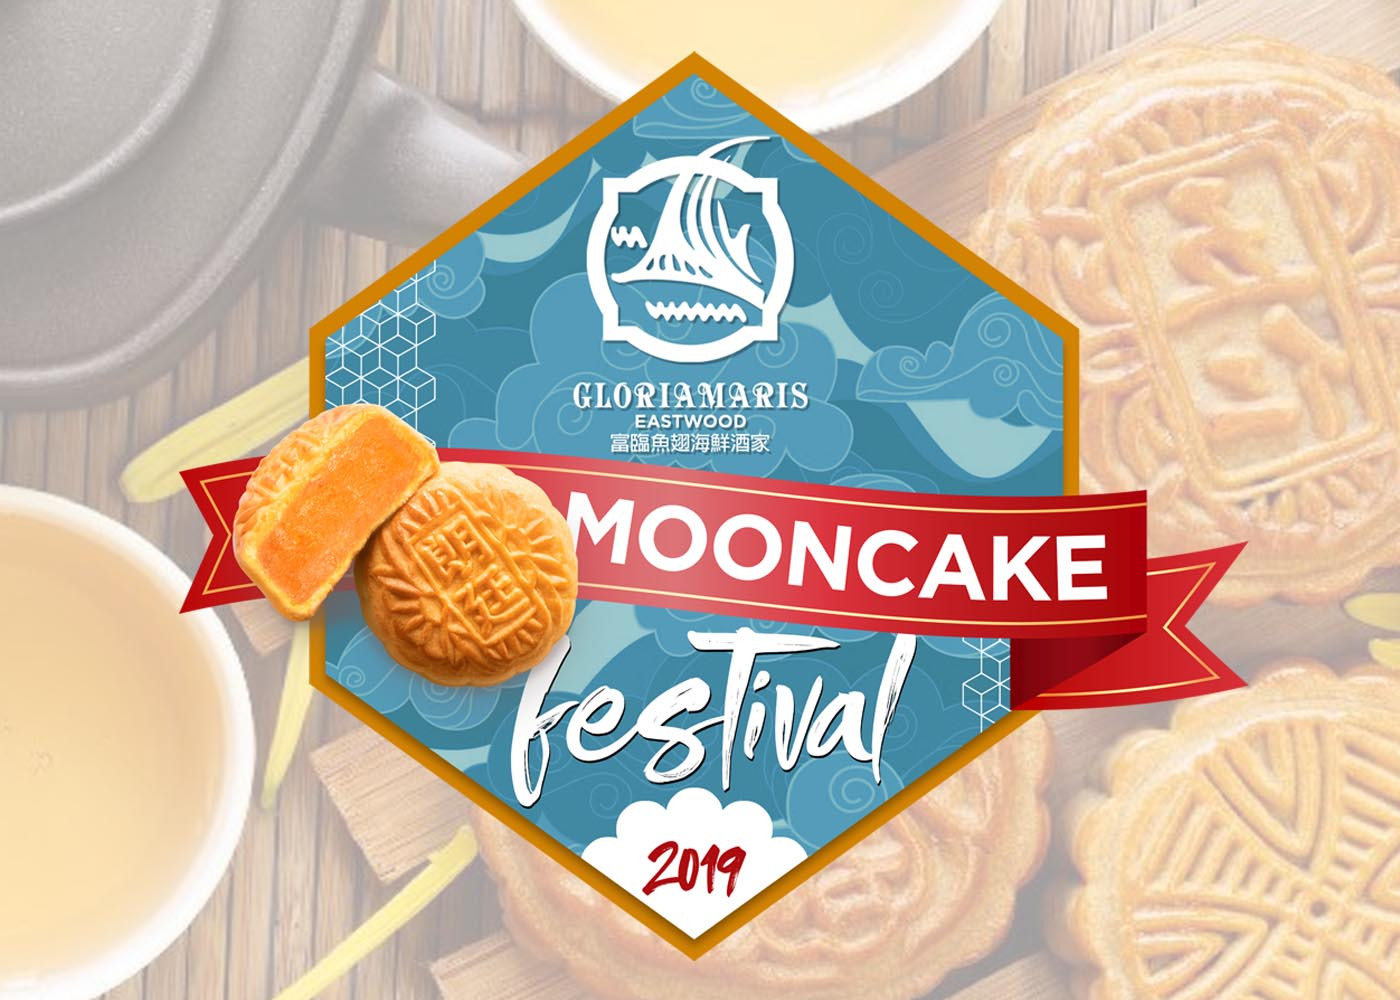 GM Mooncake Website.jpg